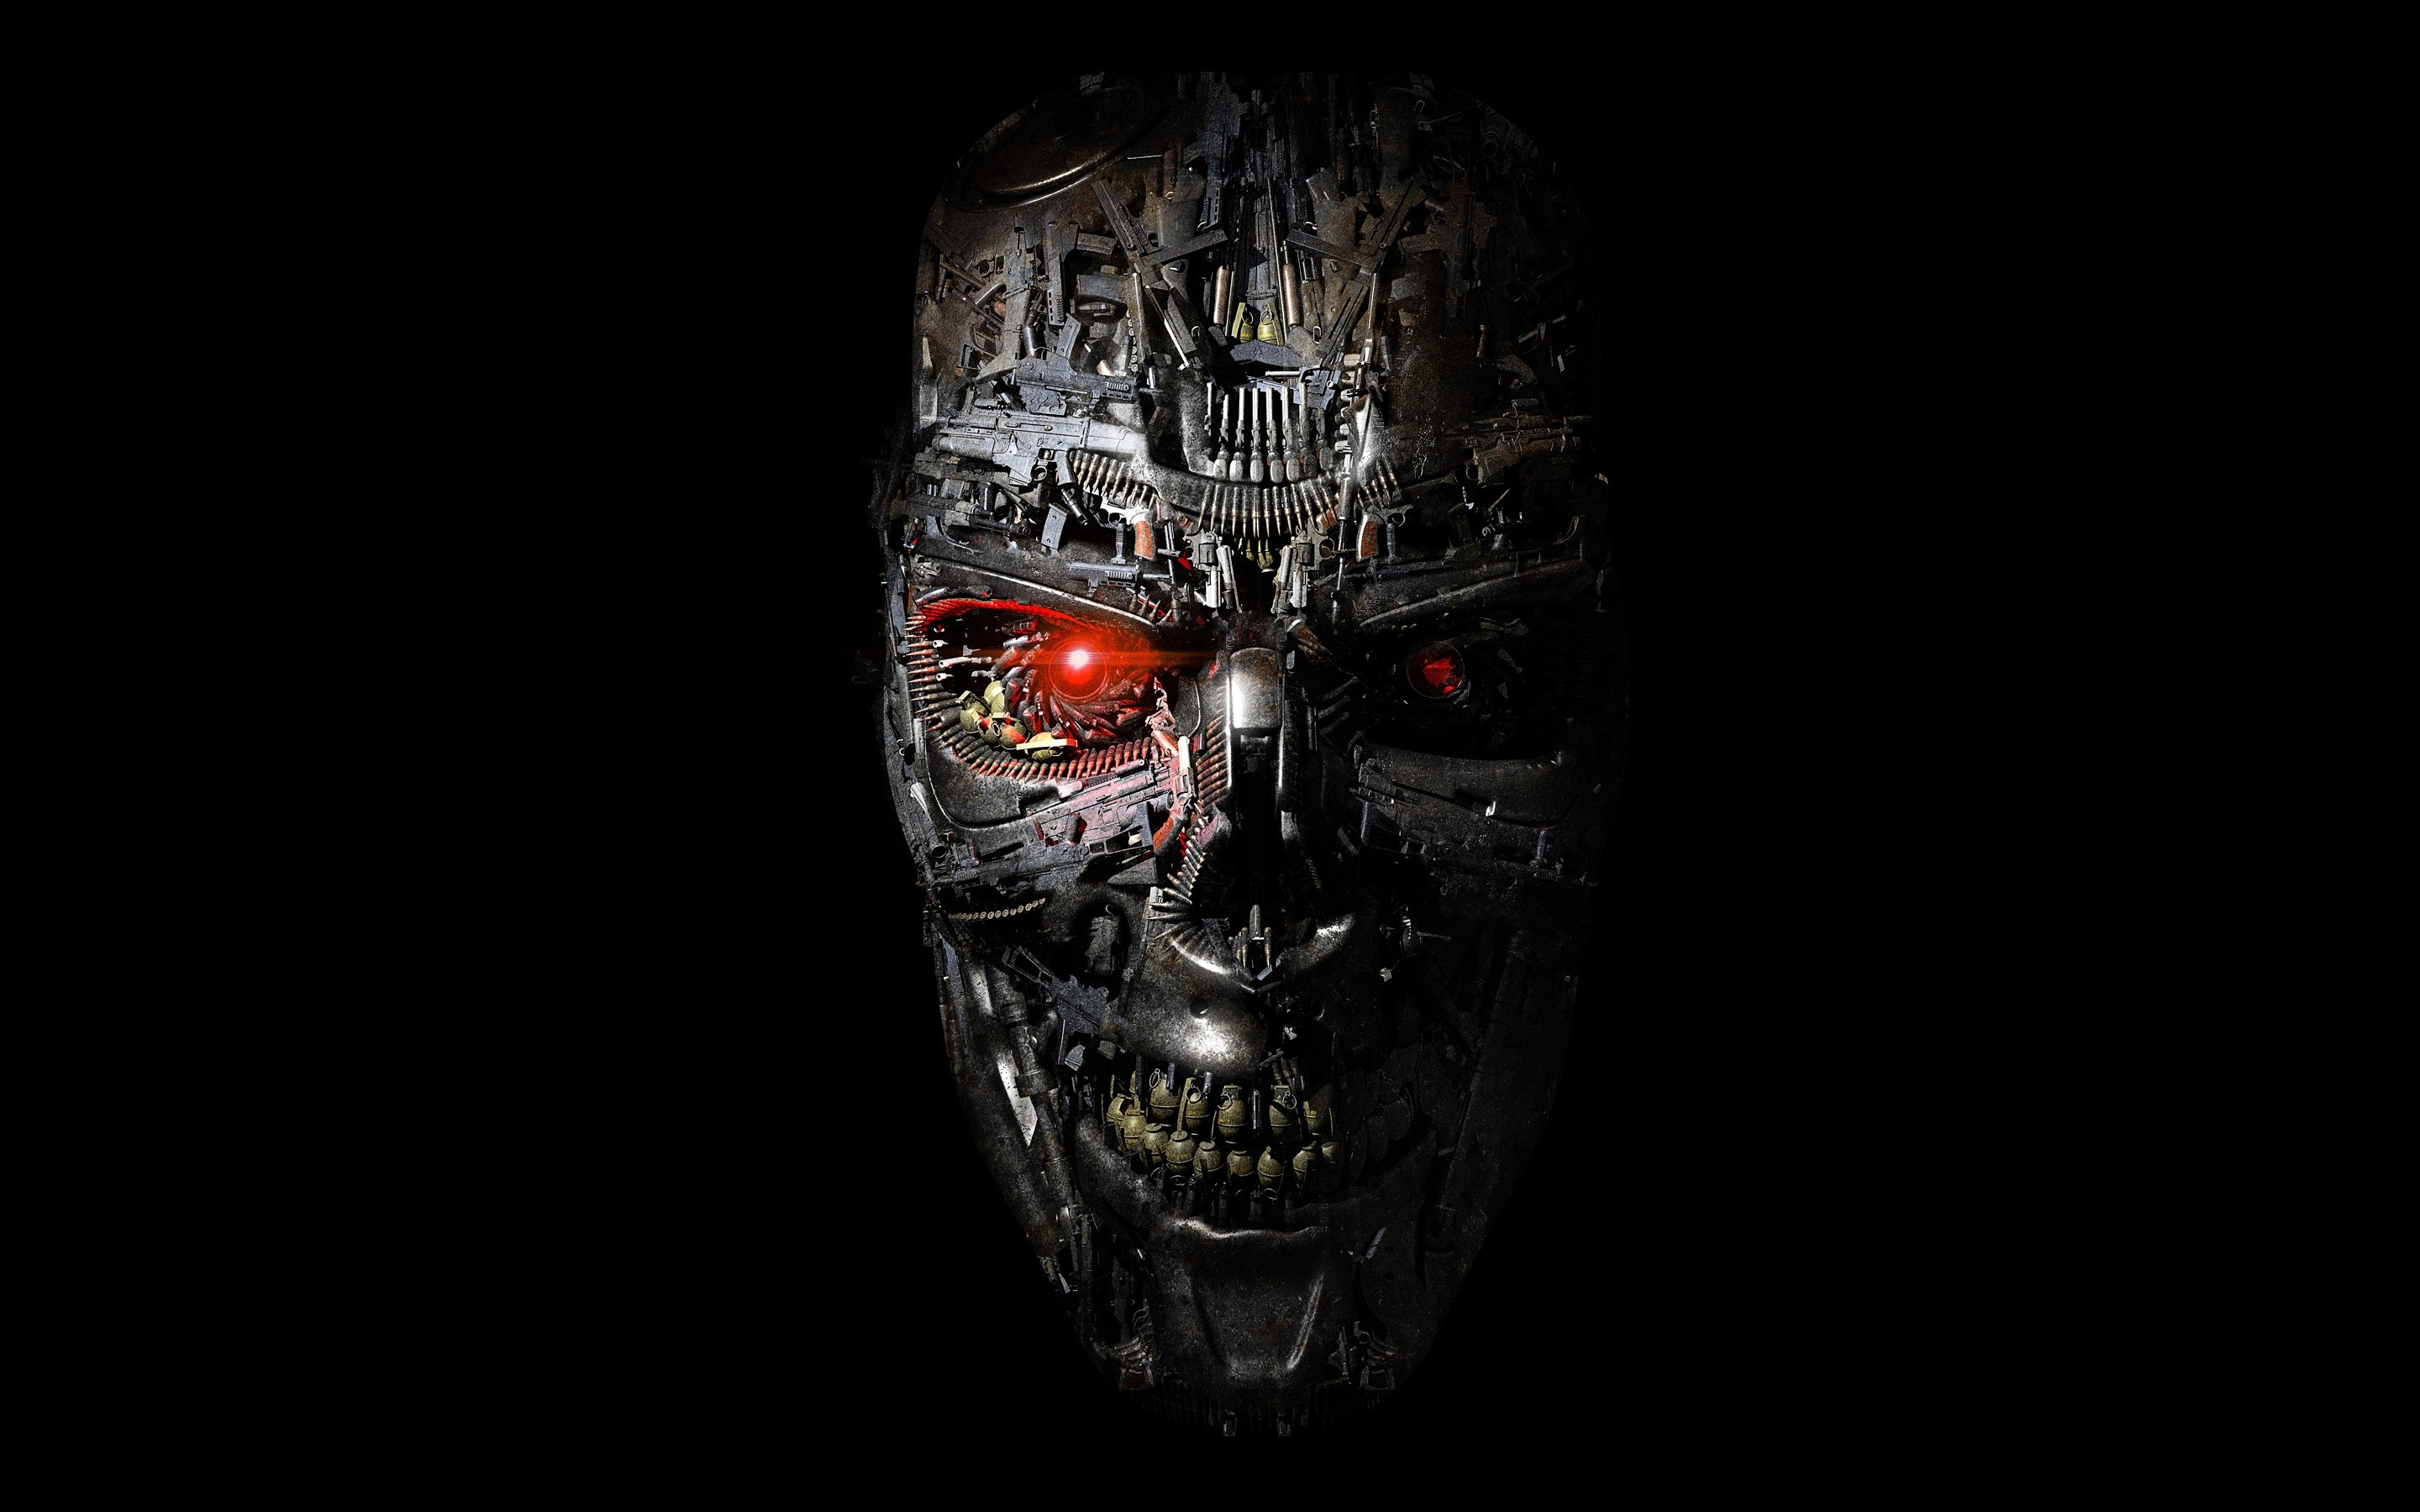 2880x1800 Terminator Genisys Robot Wallpapers